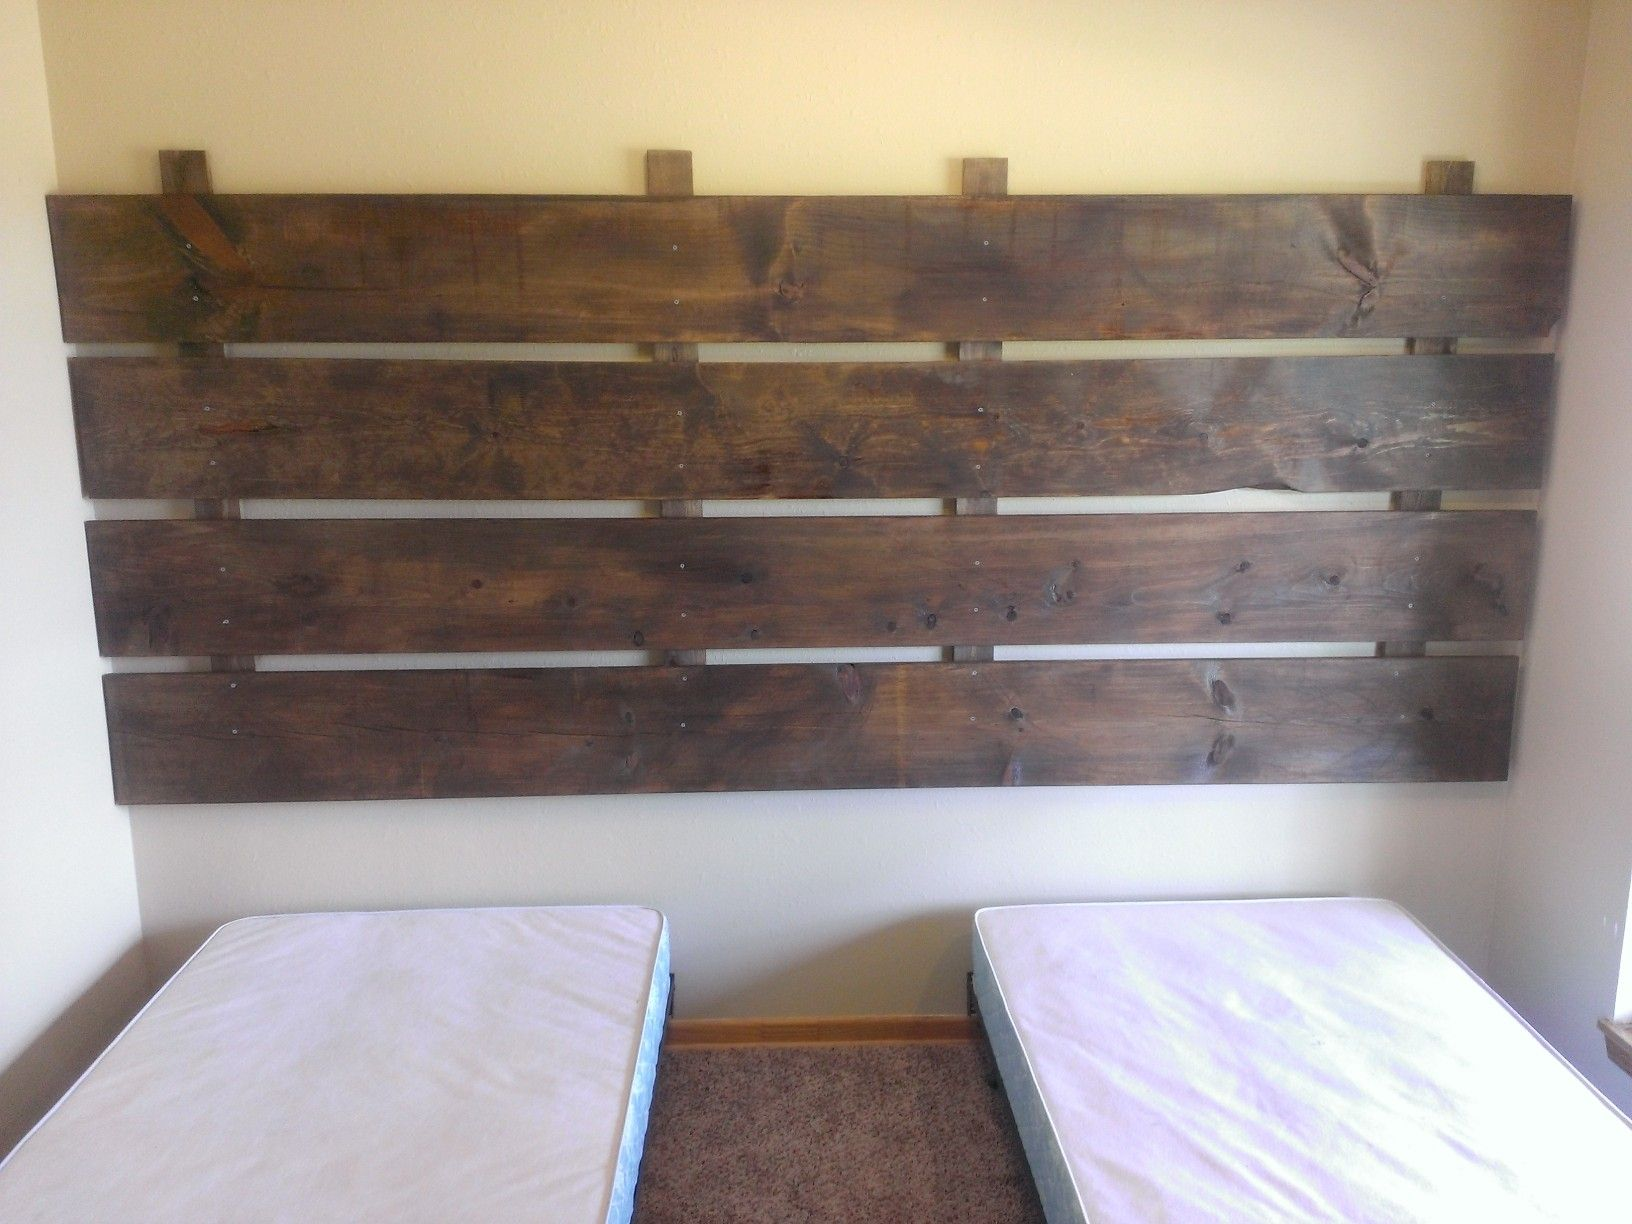 Rachael and I made new headboards for room #1, also known as The Lonesome Dove room.